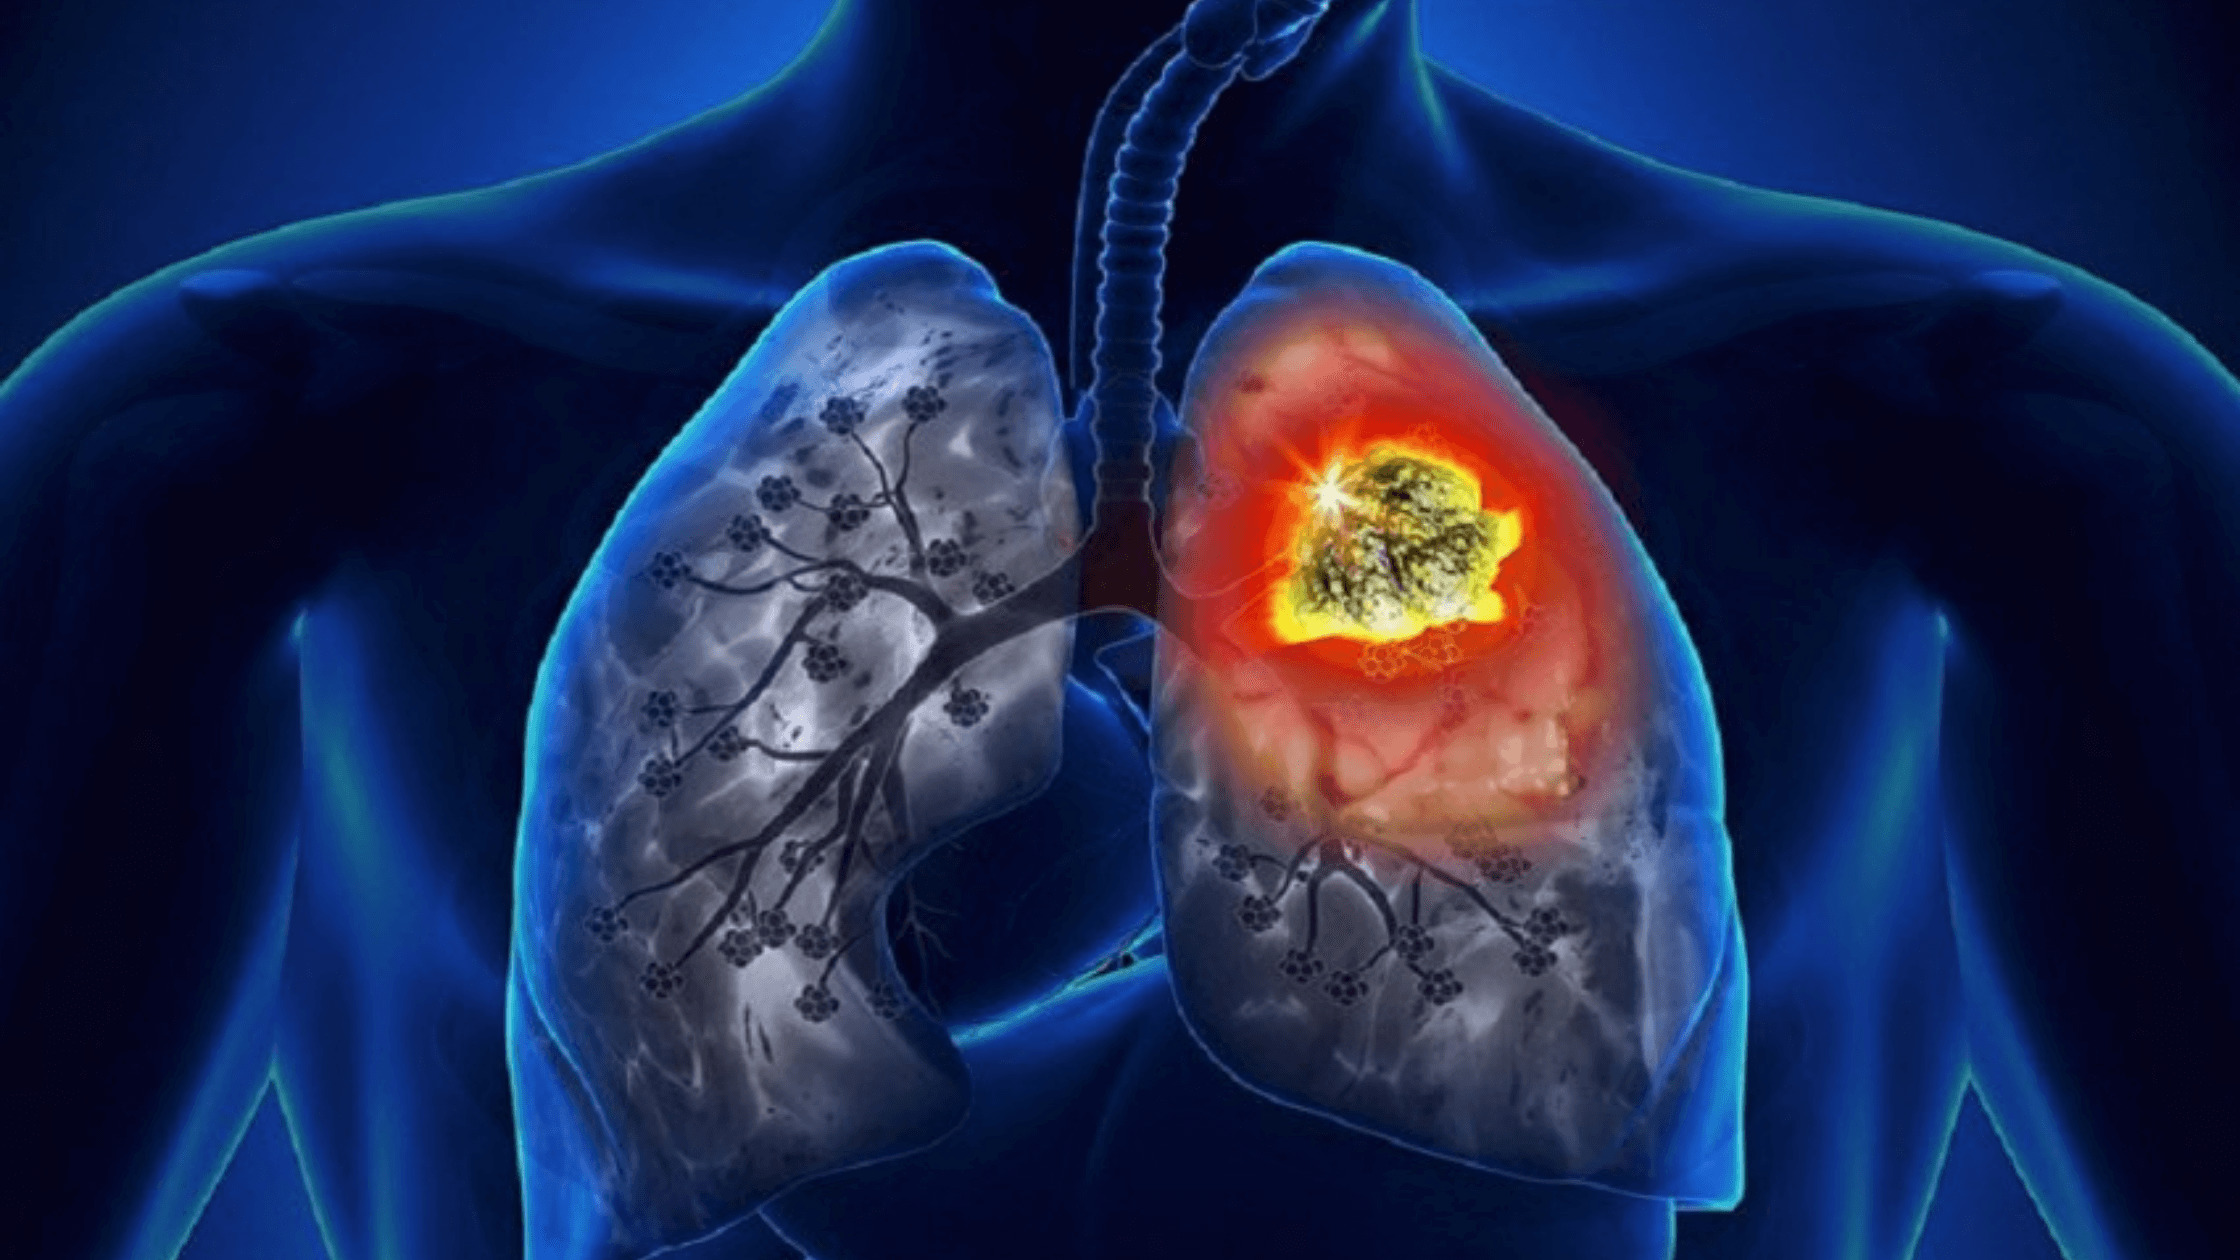 HRCTs-for-Covid-Detecting-early-stage-Lung-Cancer-1